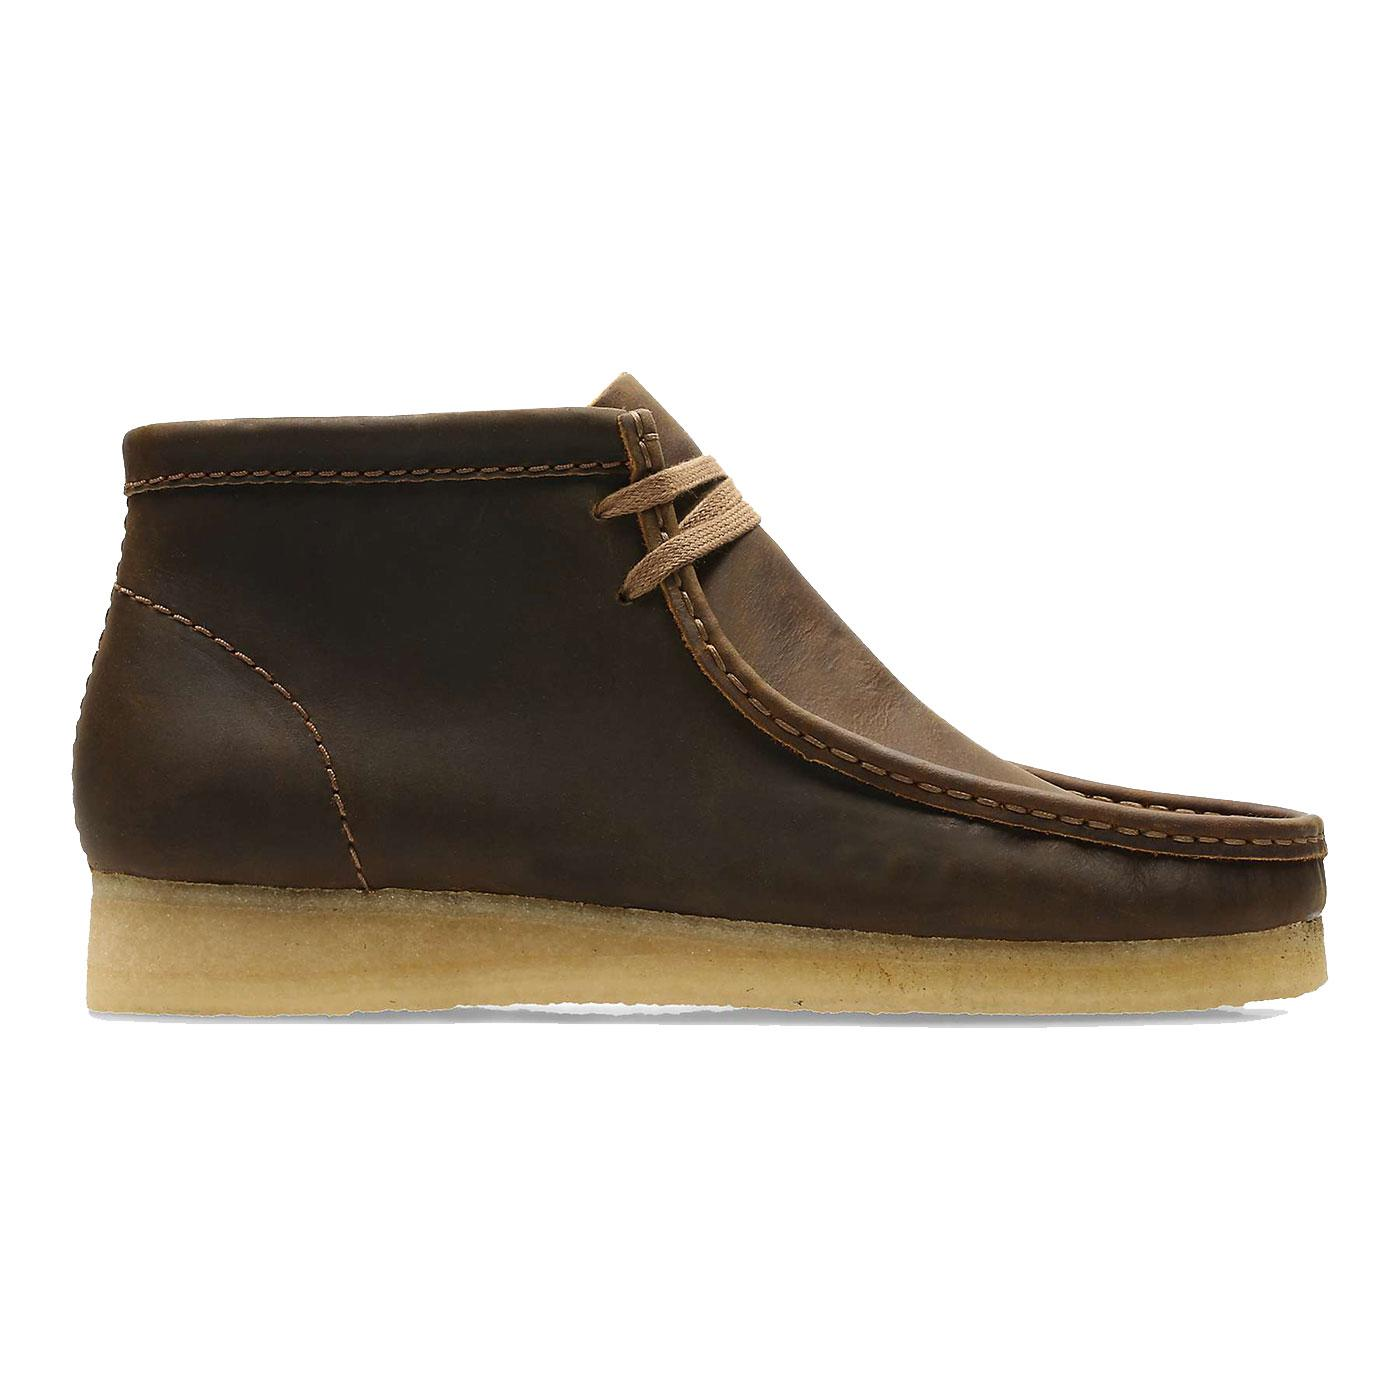 Wallabee Boots CLARKS ORIGINALS Leather Boots (BW)